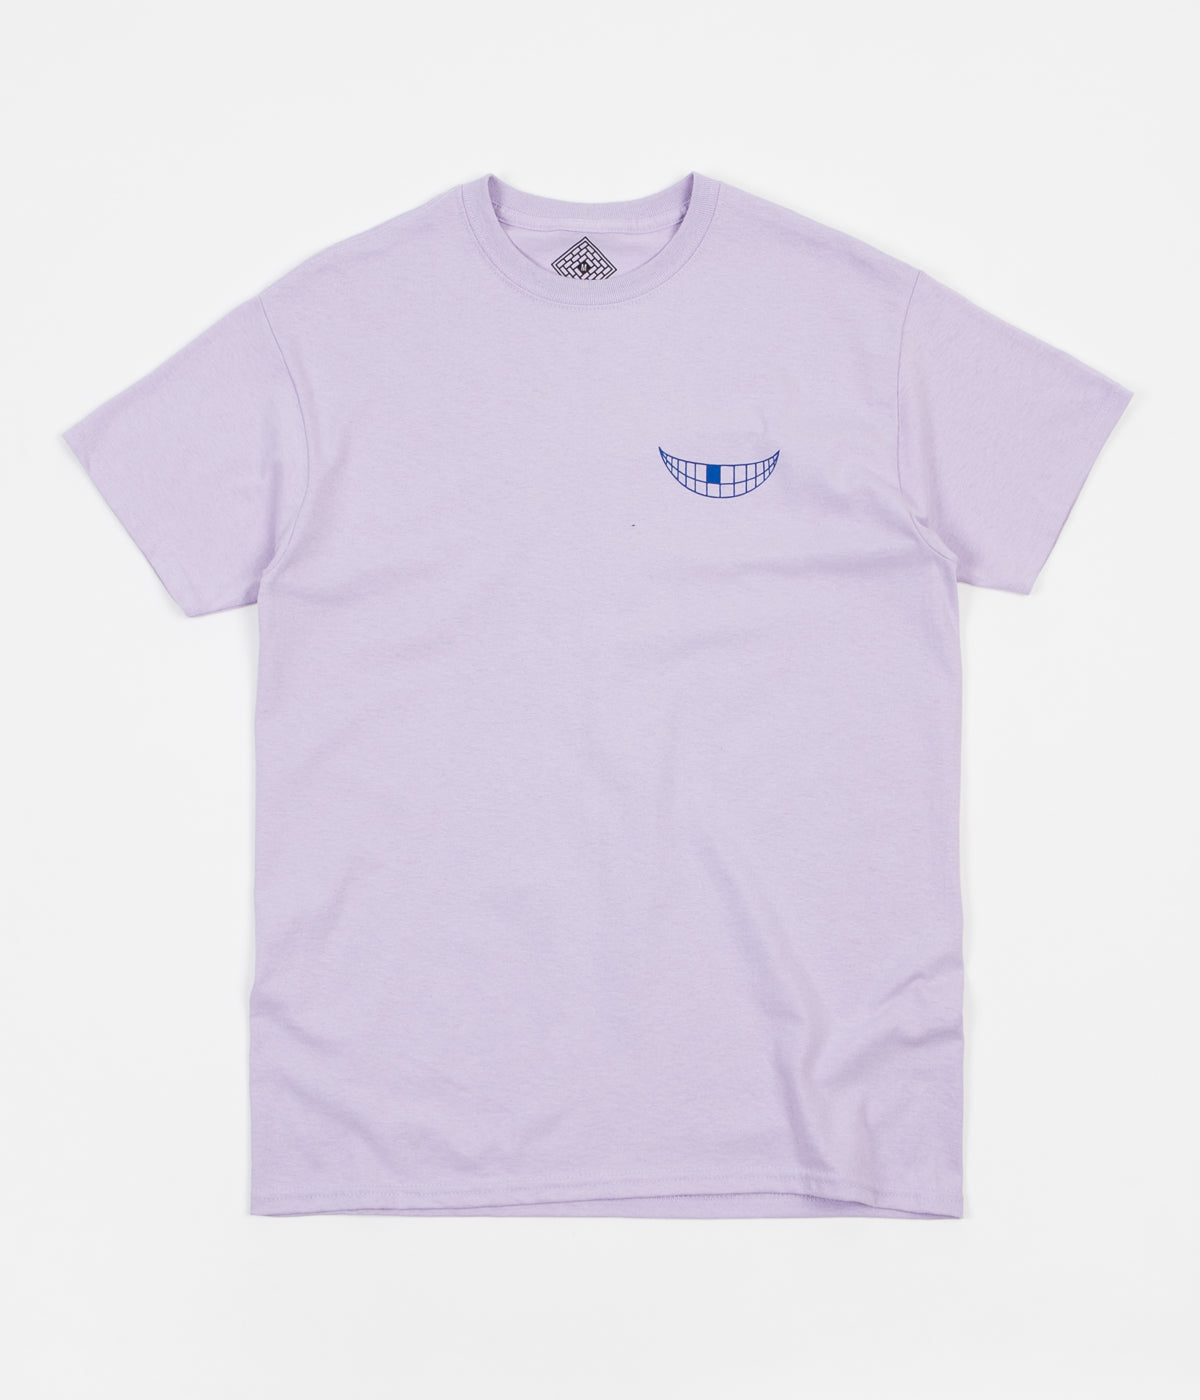 The National Skateboard Company Grin T-Shirt - Orchid